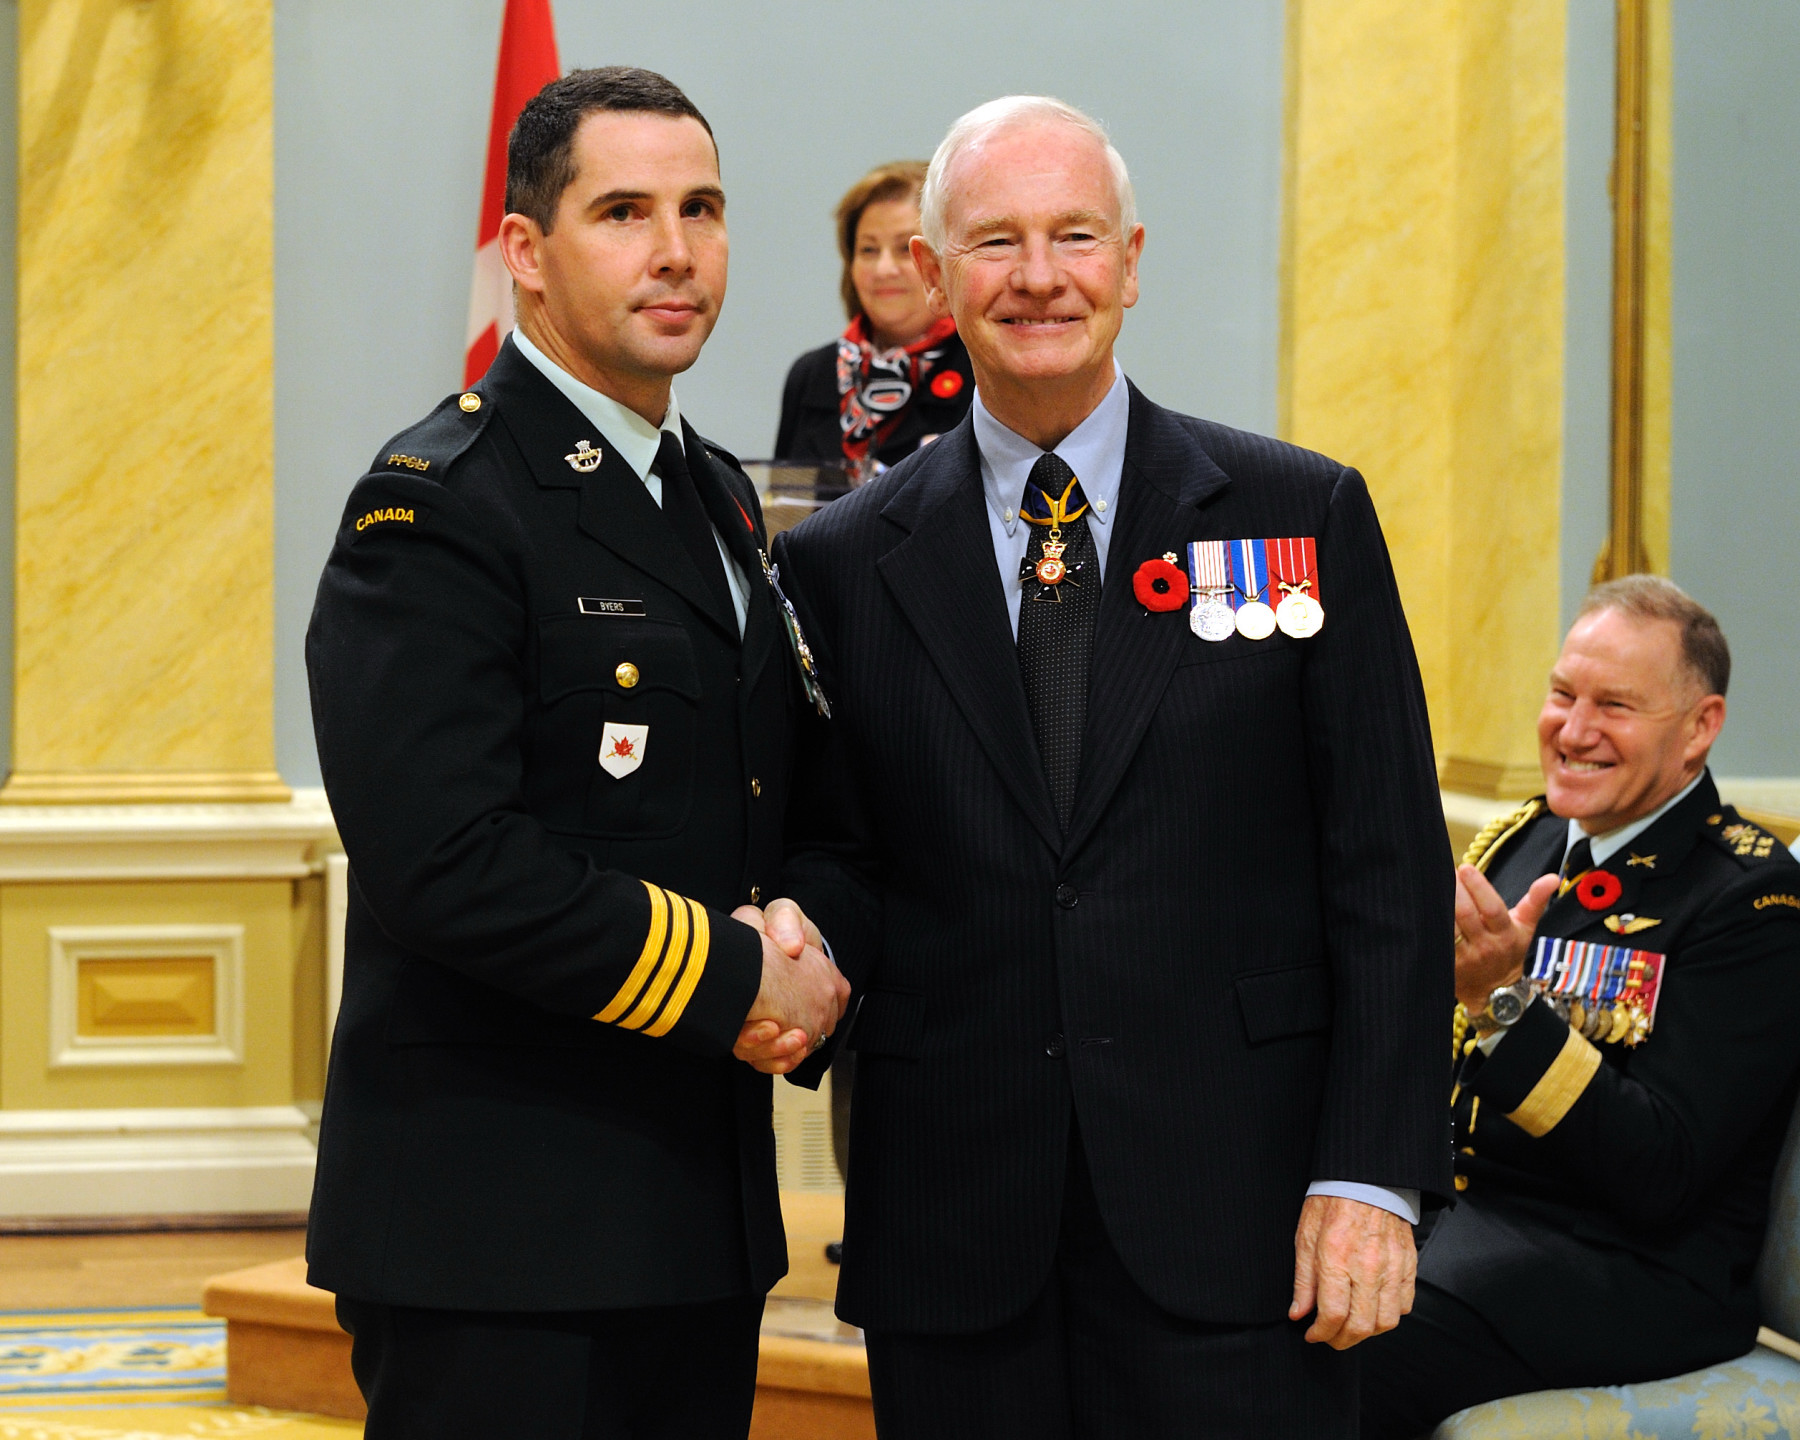 Major Timothy Charles Byers, M.S.M., C.D., received the Meritorious Service Medal (Military Division) from the Governor General. From May 2008 through March 2009, Major Byers exhibited professionalism, foresight and leadership in his capacity as commander 4th Canadian Ranger Patrol Group during the planning and execution of Exercise WESTERN SPIRIT. The exercise included an arduous 37-day snowmobile trek, during which he led the patrol through severe arctic conditions, highlighting the capabilities of Canadian Rangers in over 25 northern communities. The success of this Exercise and its connection with Canadians in the North brought great credit to the Canadian Forces.